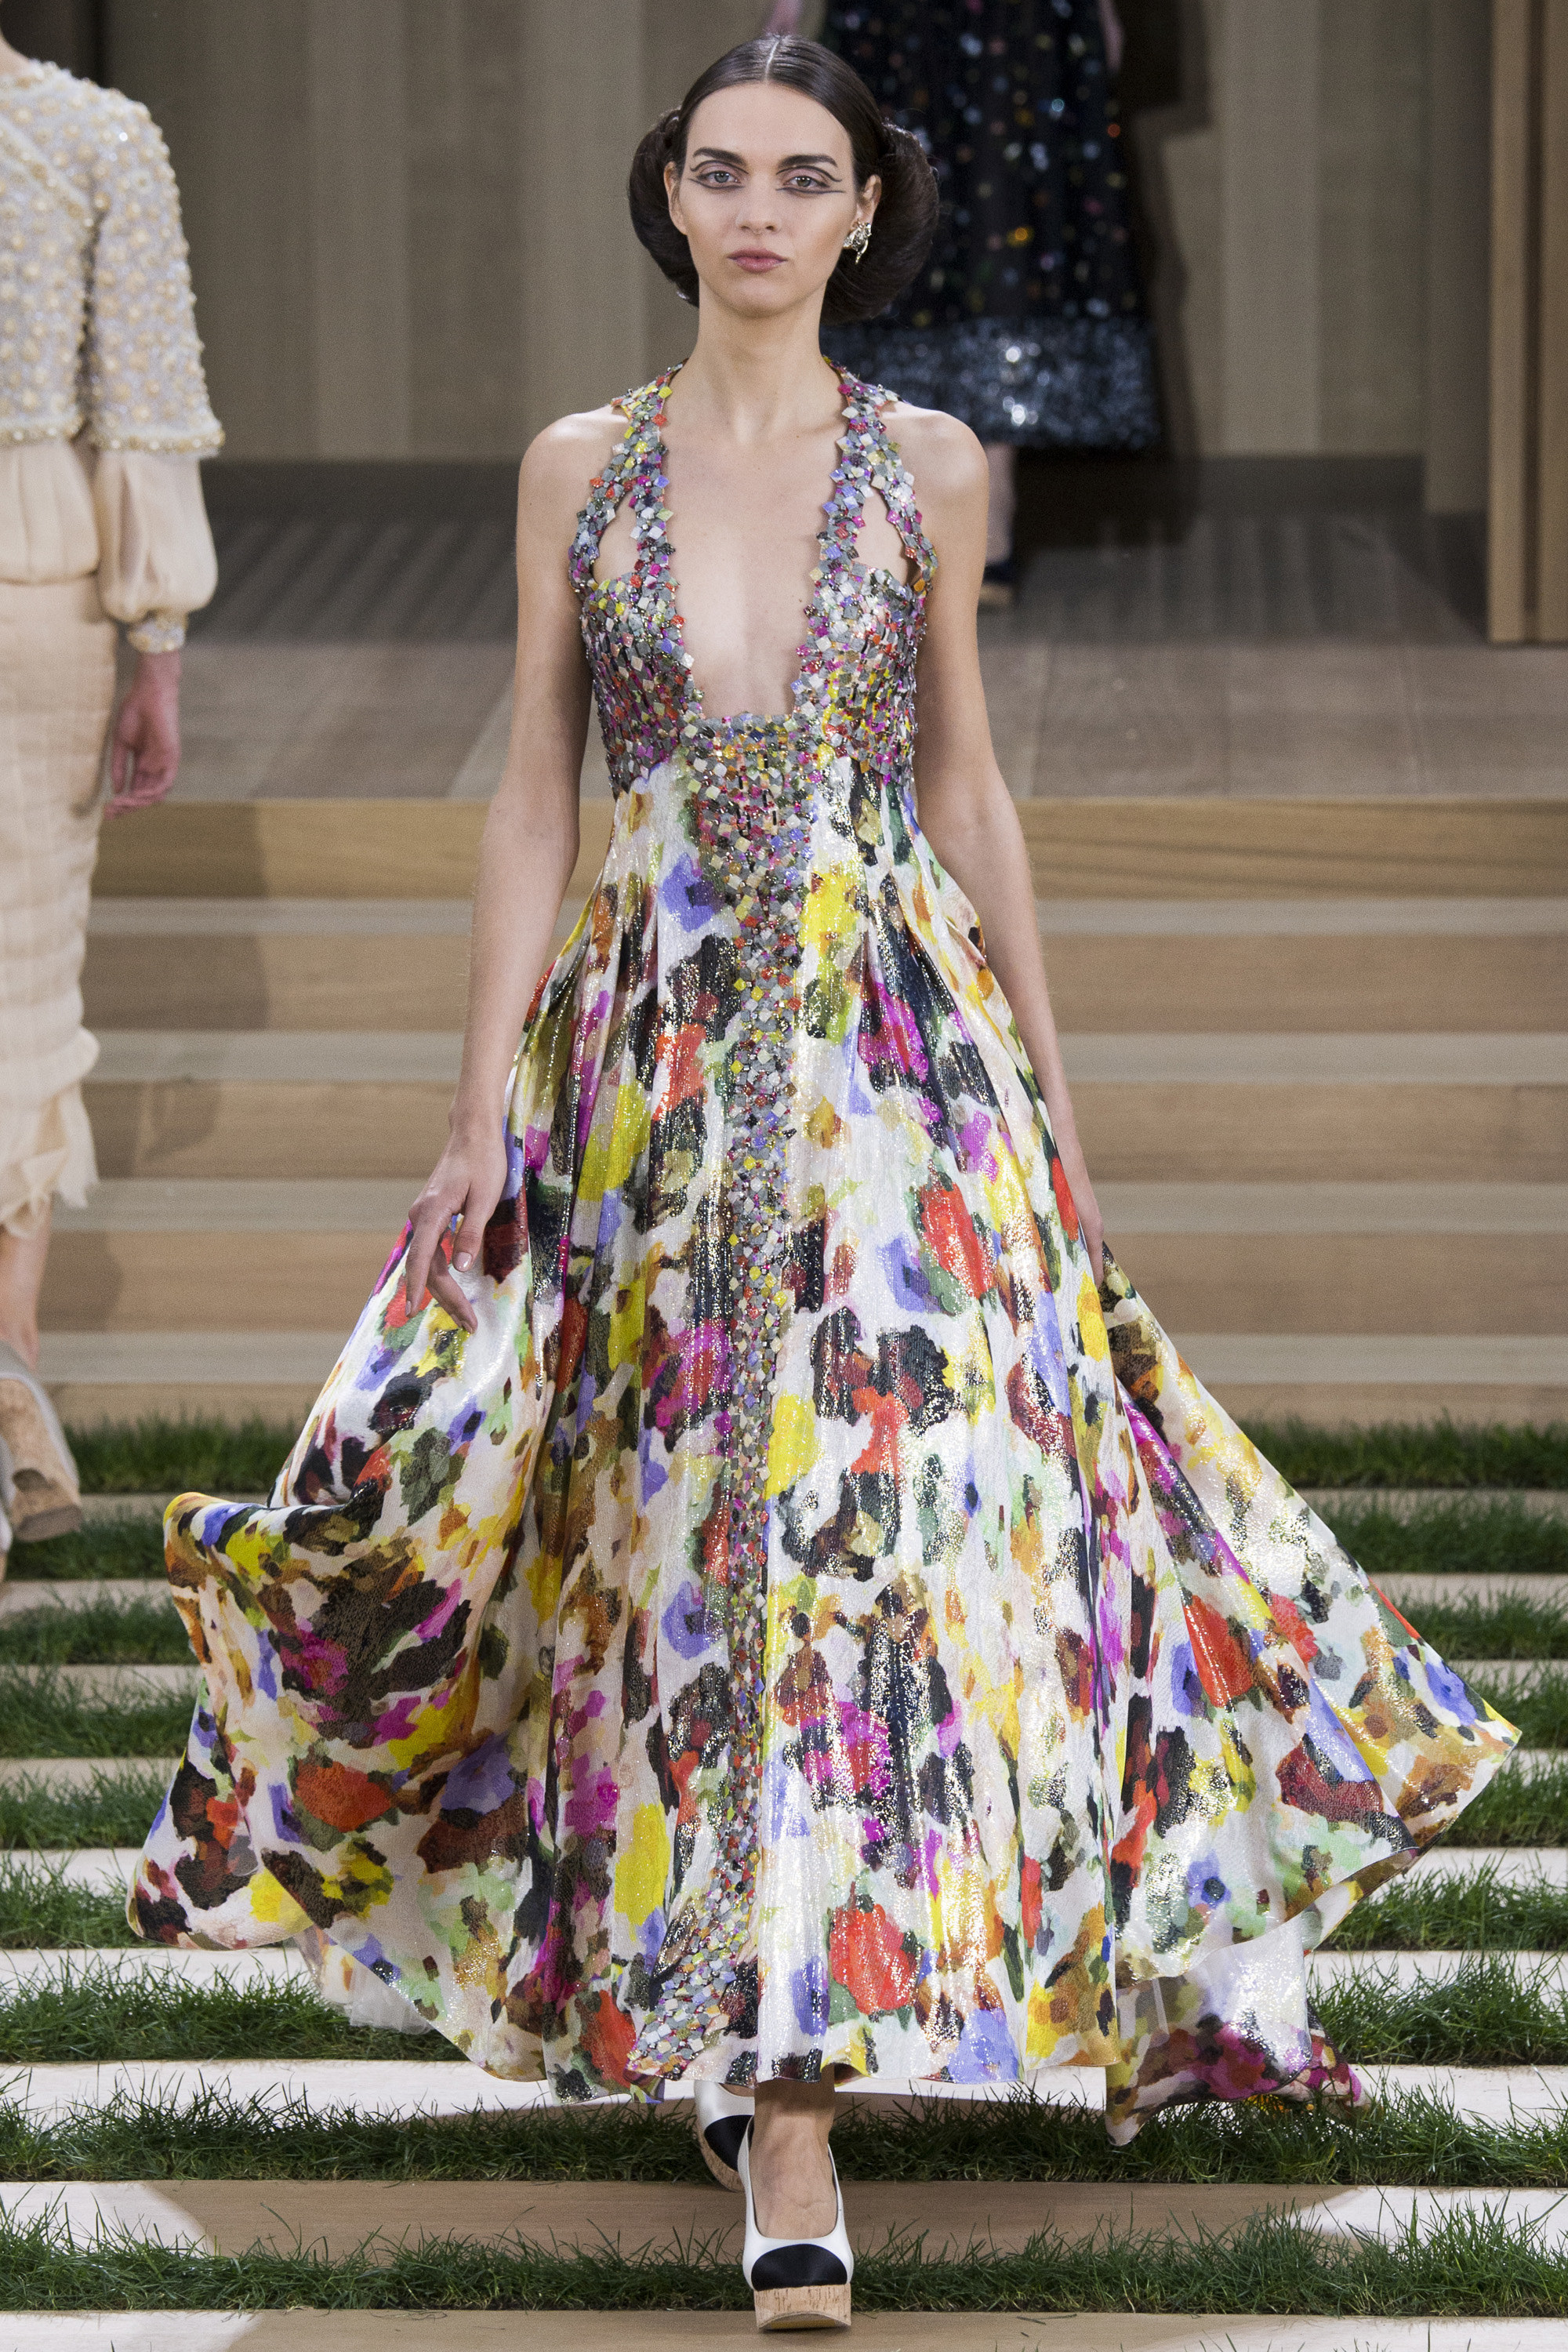 Chanel-Couture-Spring-2016-Paris-Fashion-Week-12.jpg